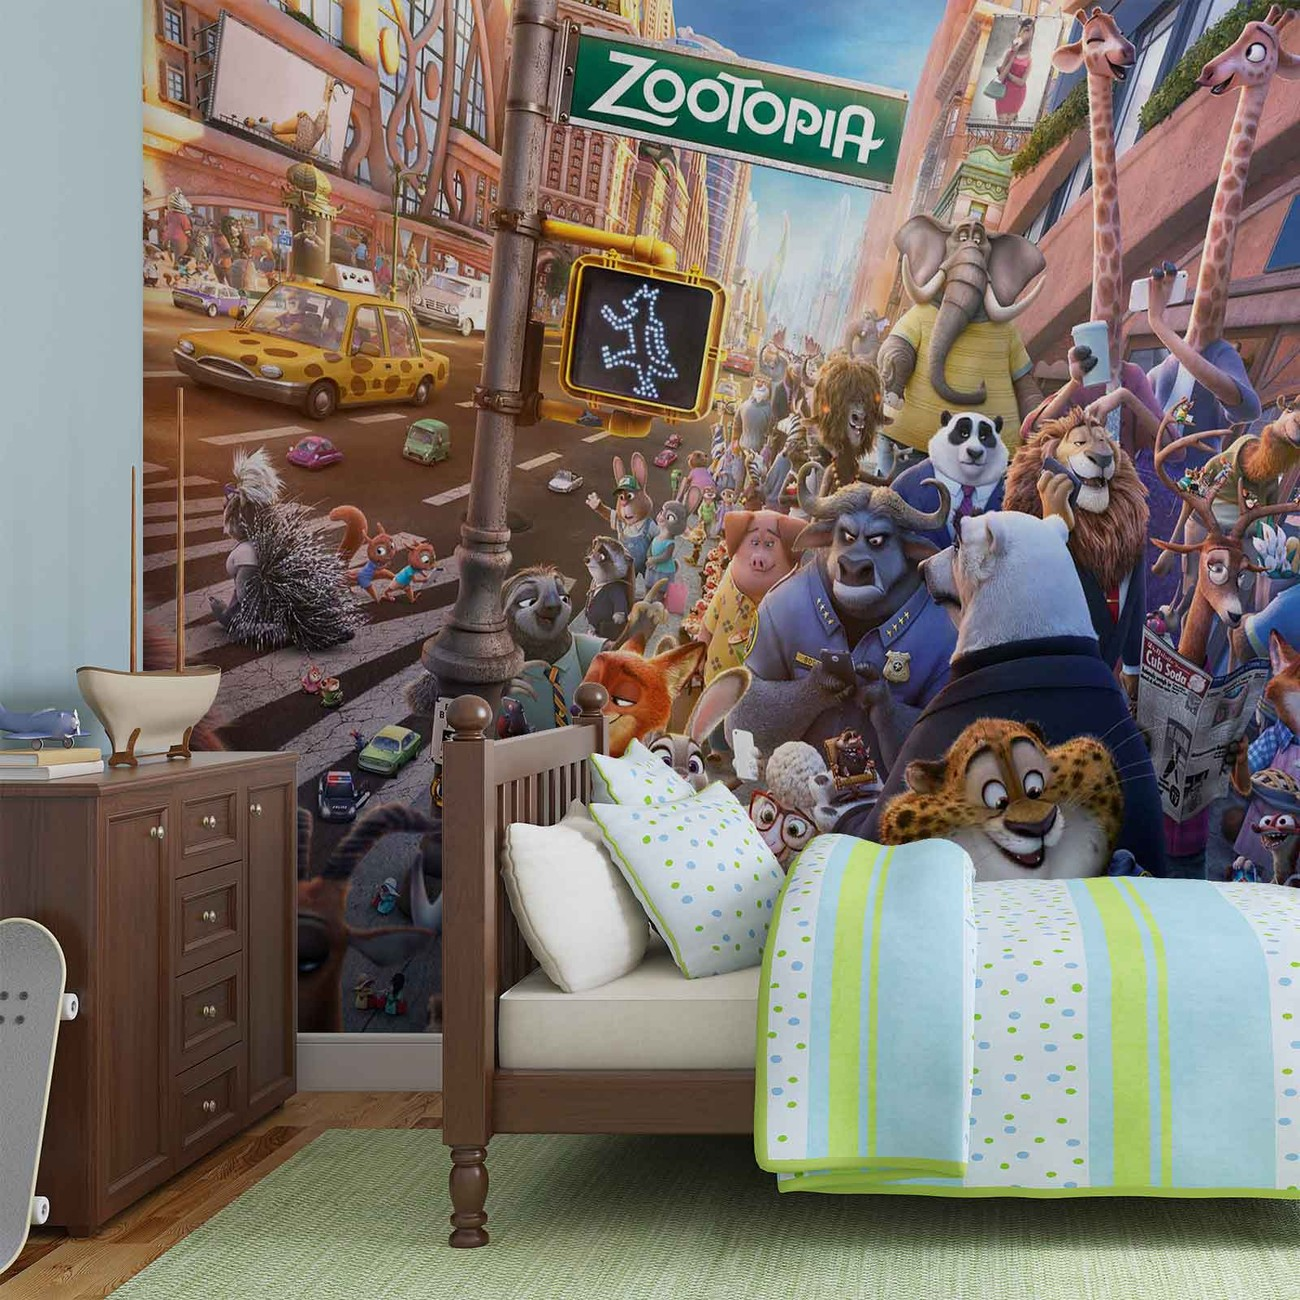 Walt disney zootopia wall paper mural buy at europosters for Disney wall mural uk